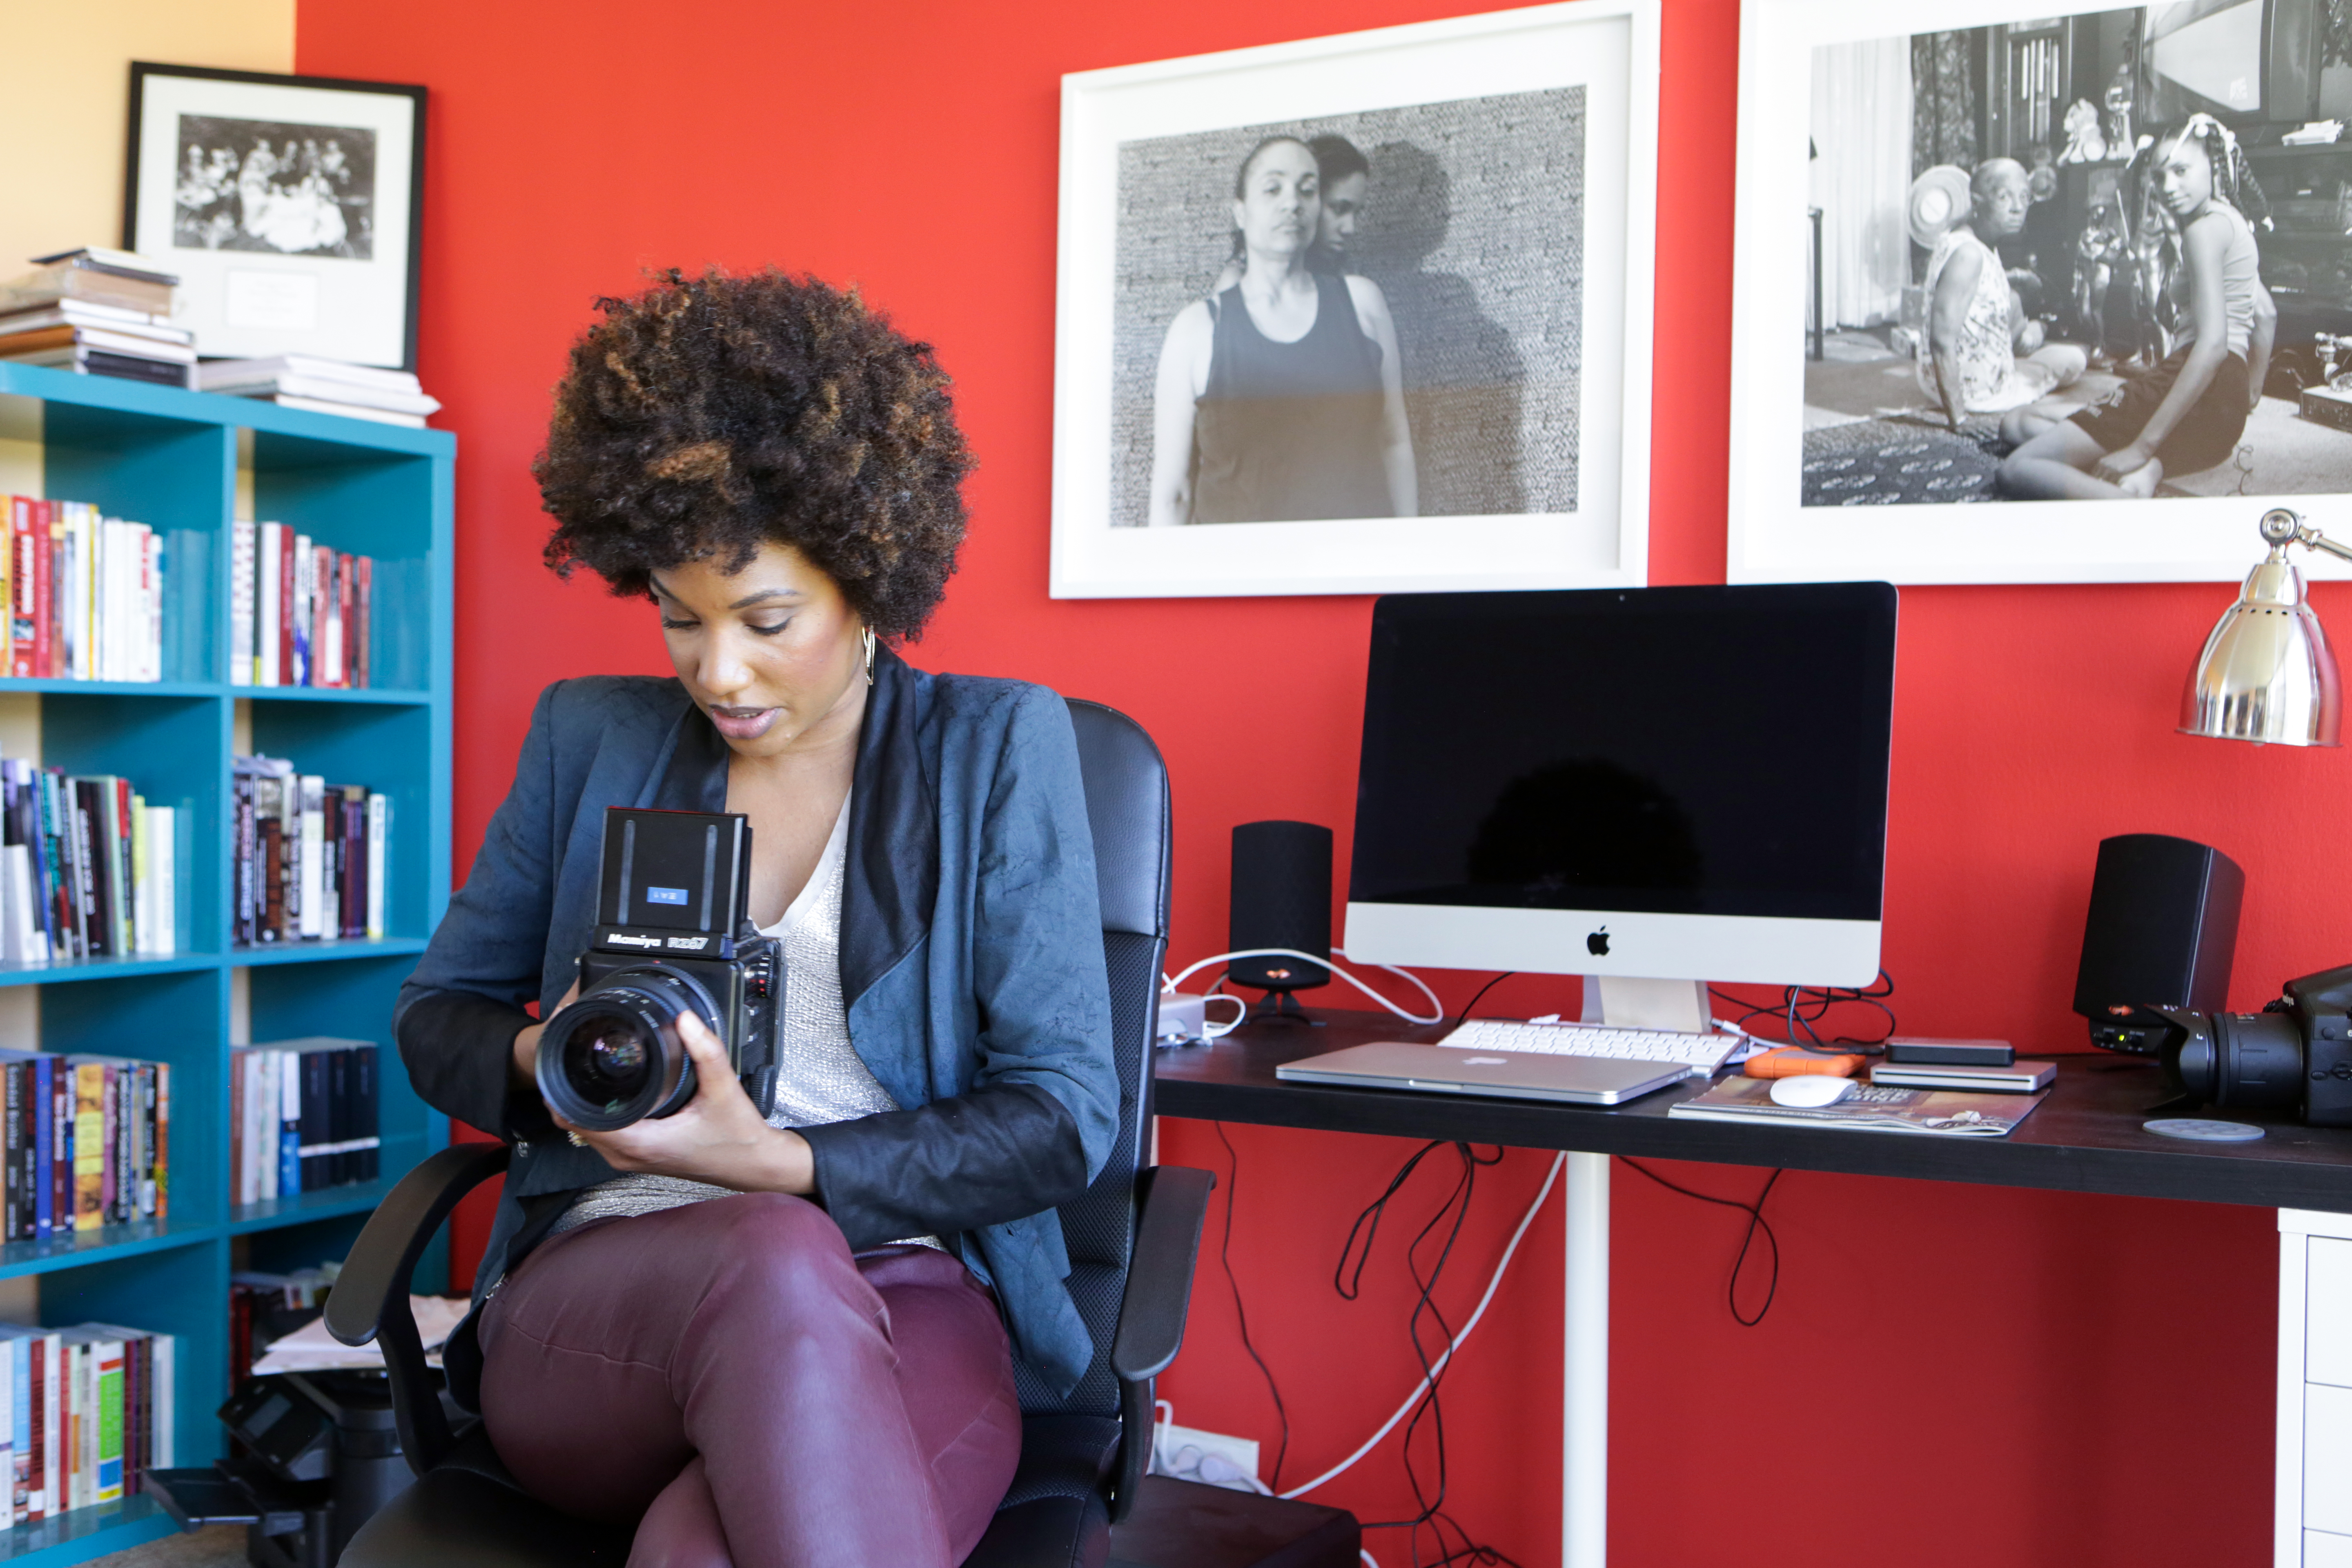 CHICAGO, ILLINOIS, SEPTEMBER 12, 2015 : LaToya Ruby Frazier photographed in Chicago (John D. & Catherine MacArthur Foundation)